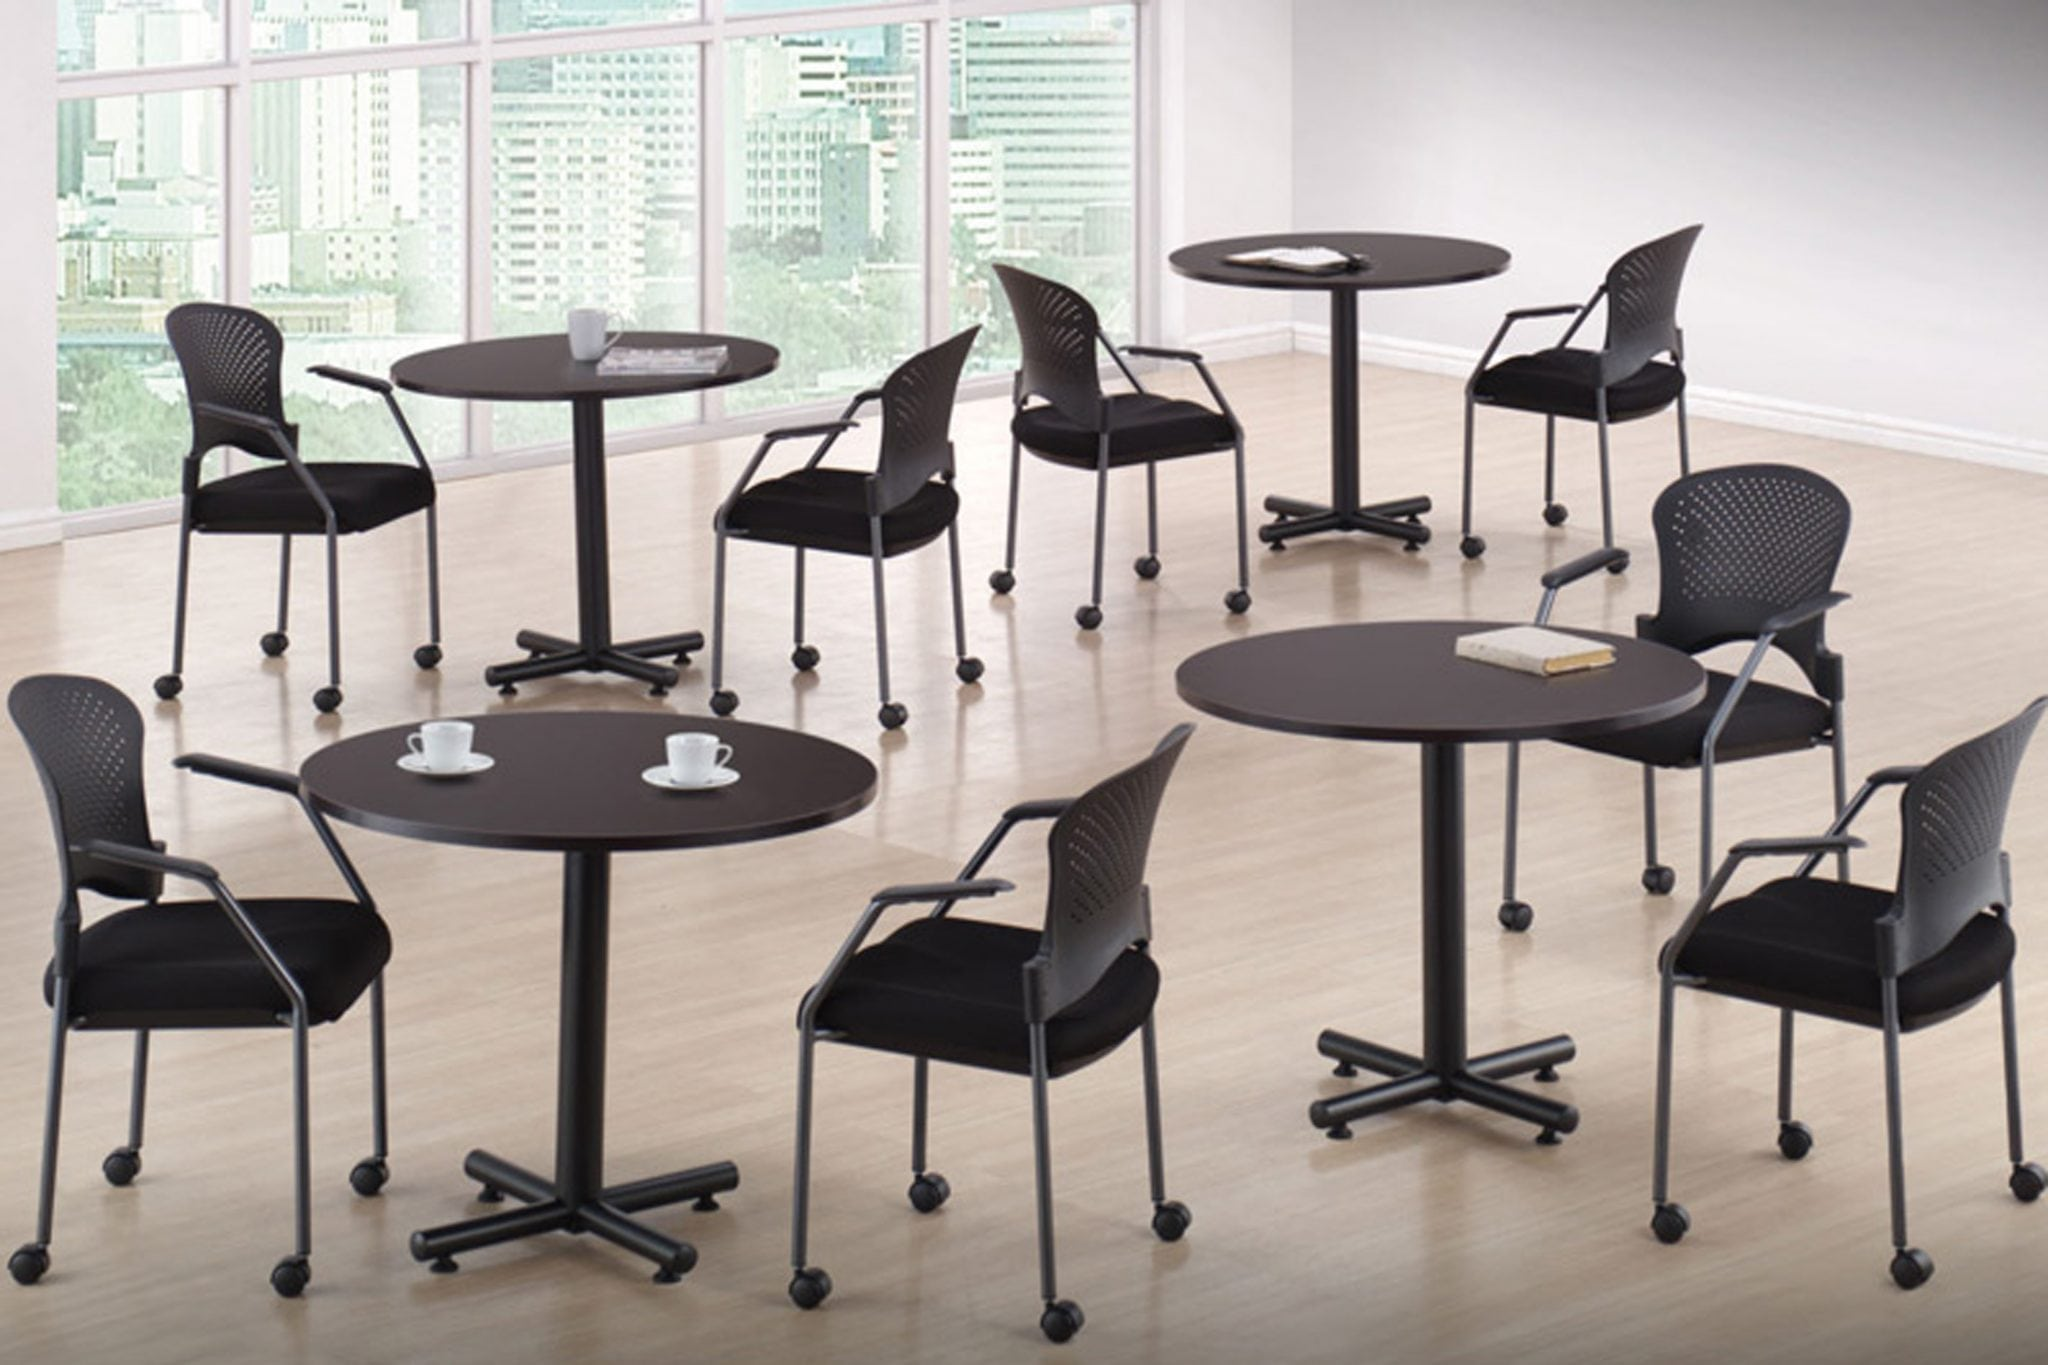 Round Multi-Purpose Tables are an affordable, durable and attractive solution for your lunchroom or breakroom needs.